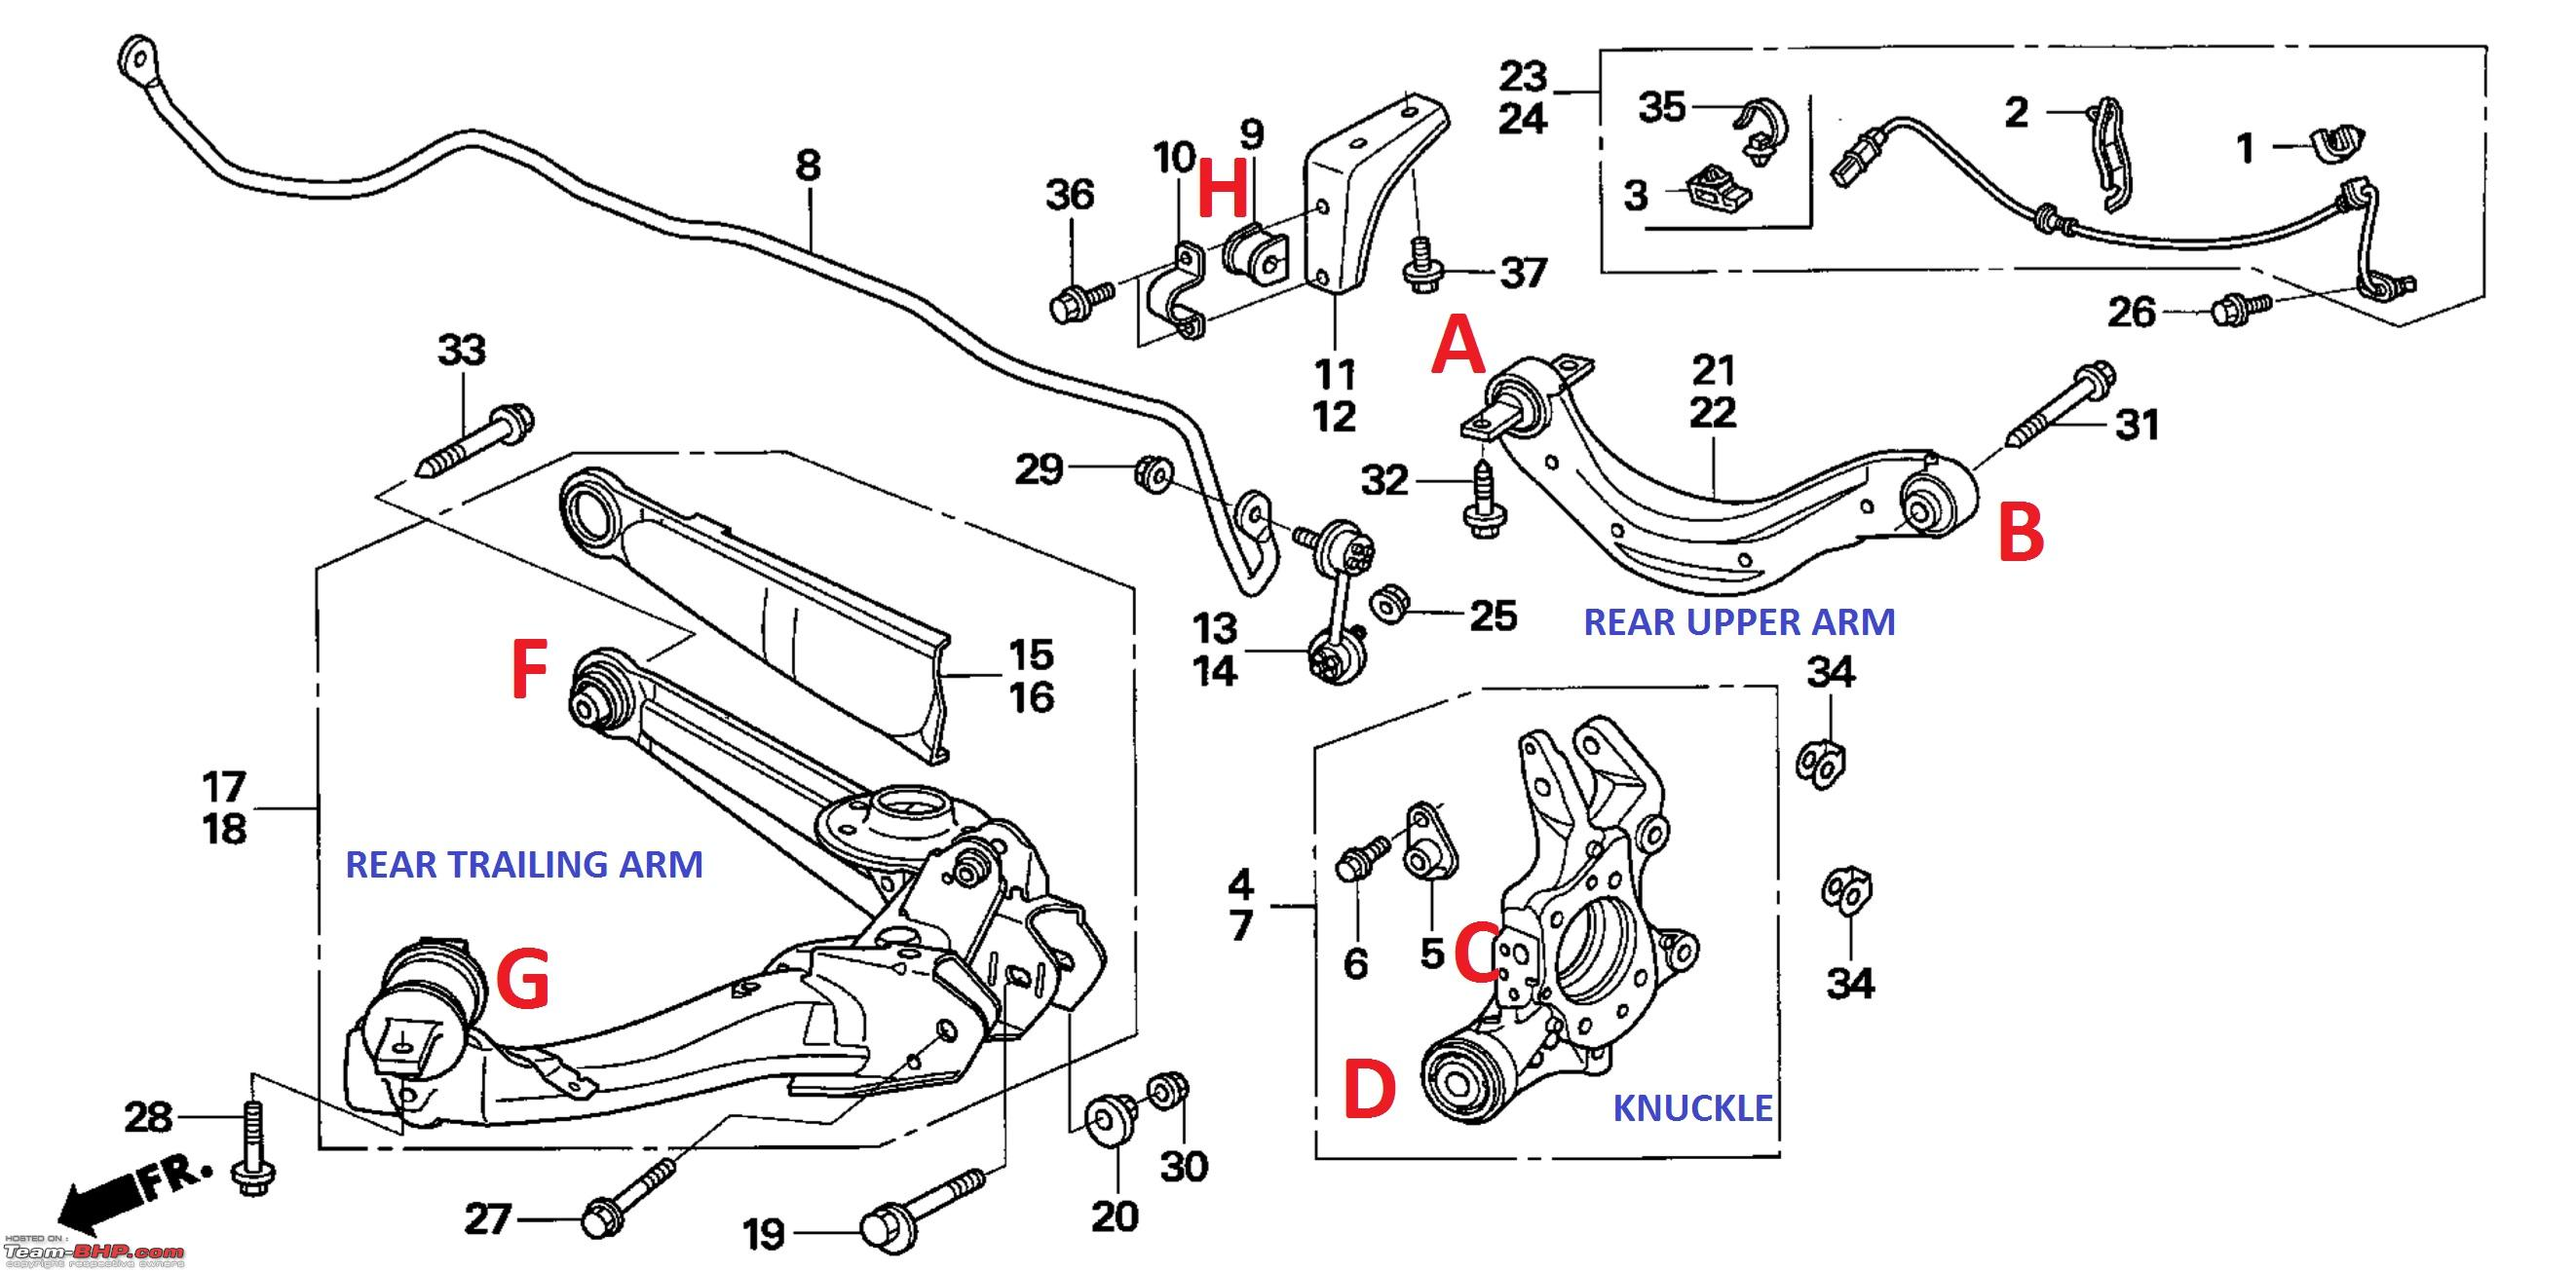 pictorial  rear suspension check  u0026 bush replacement on my honda civic